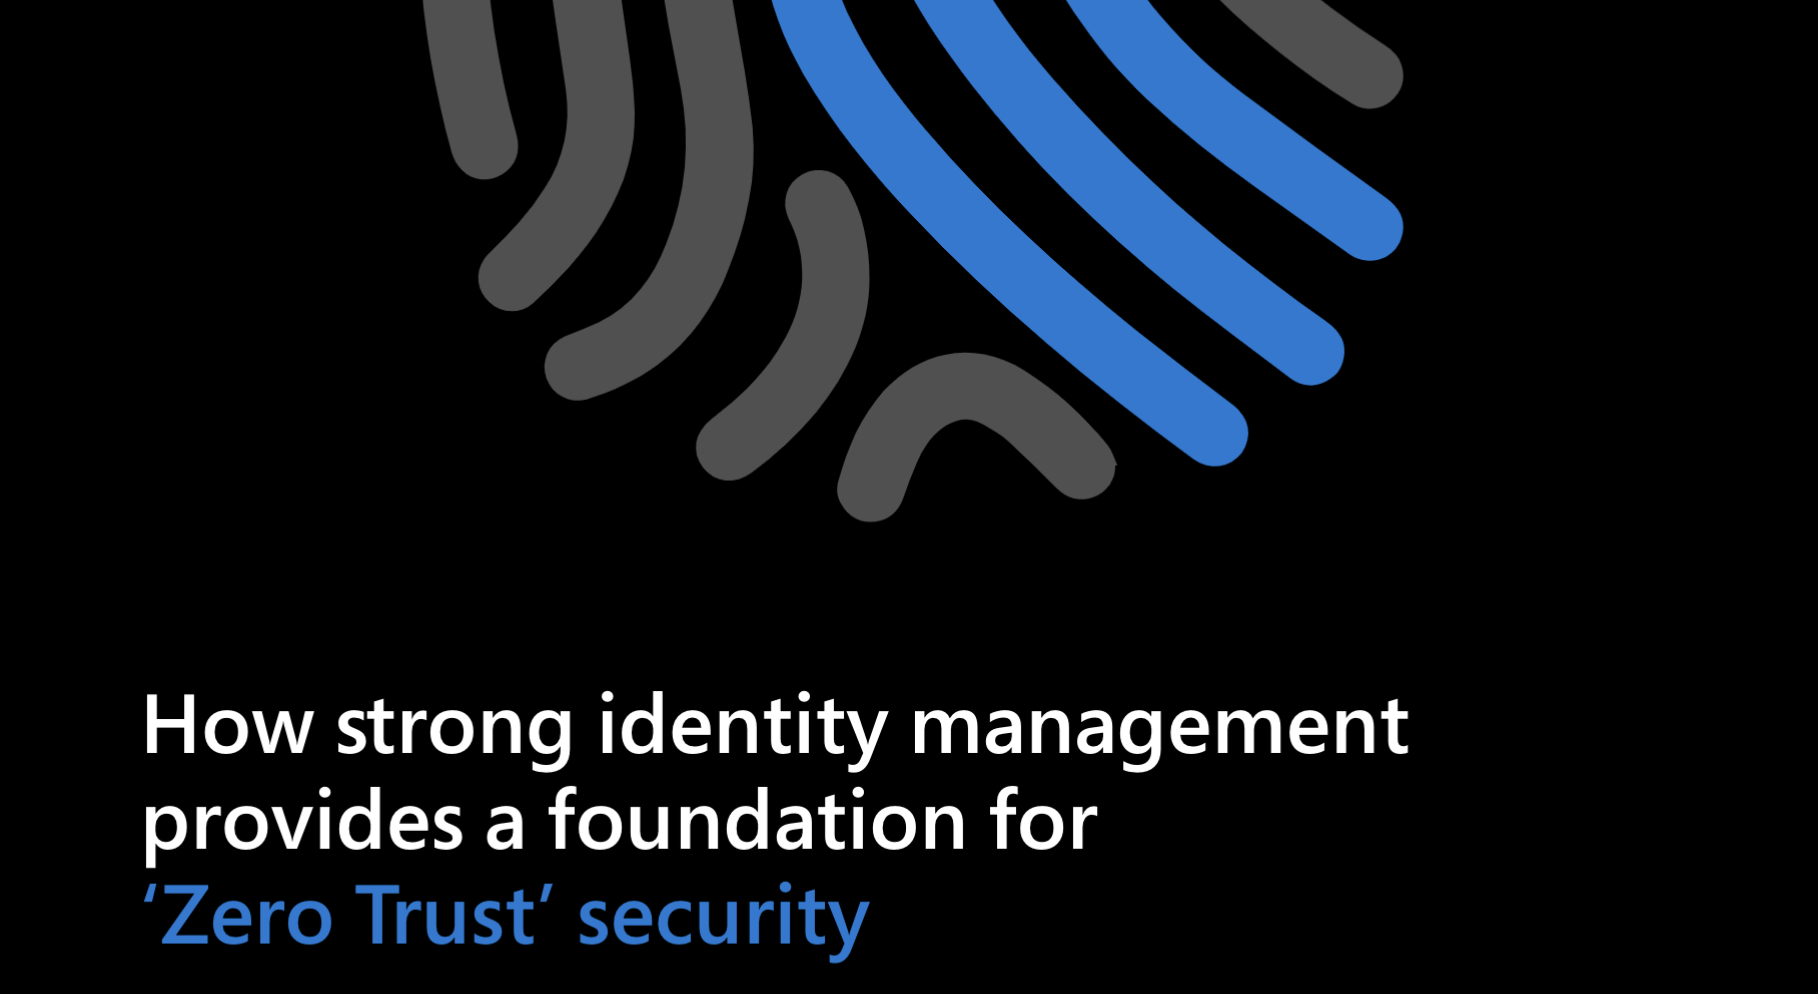 How strong identity management provides a foundation for 'Zero Trust' security